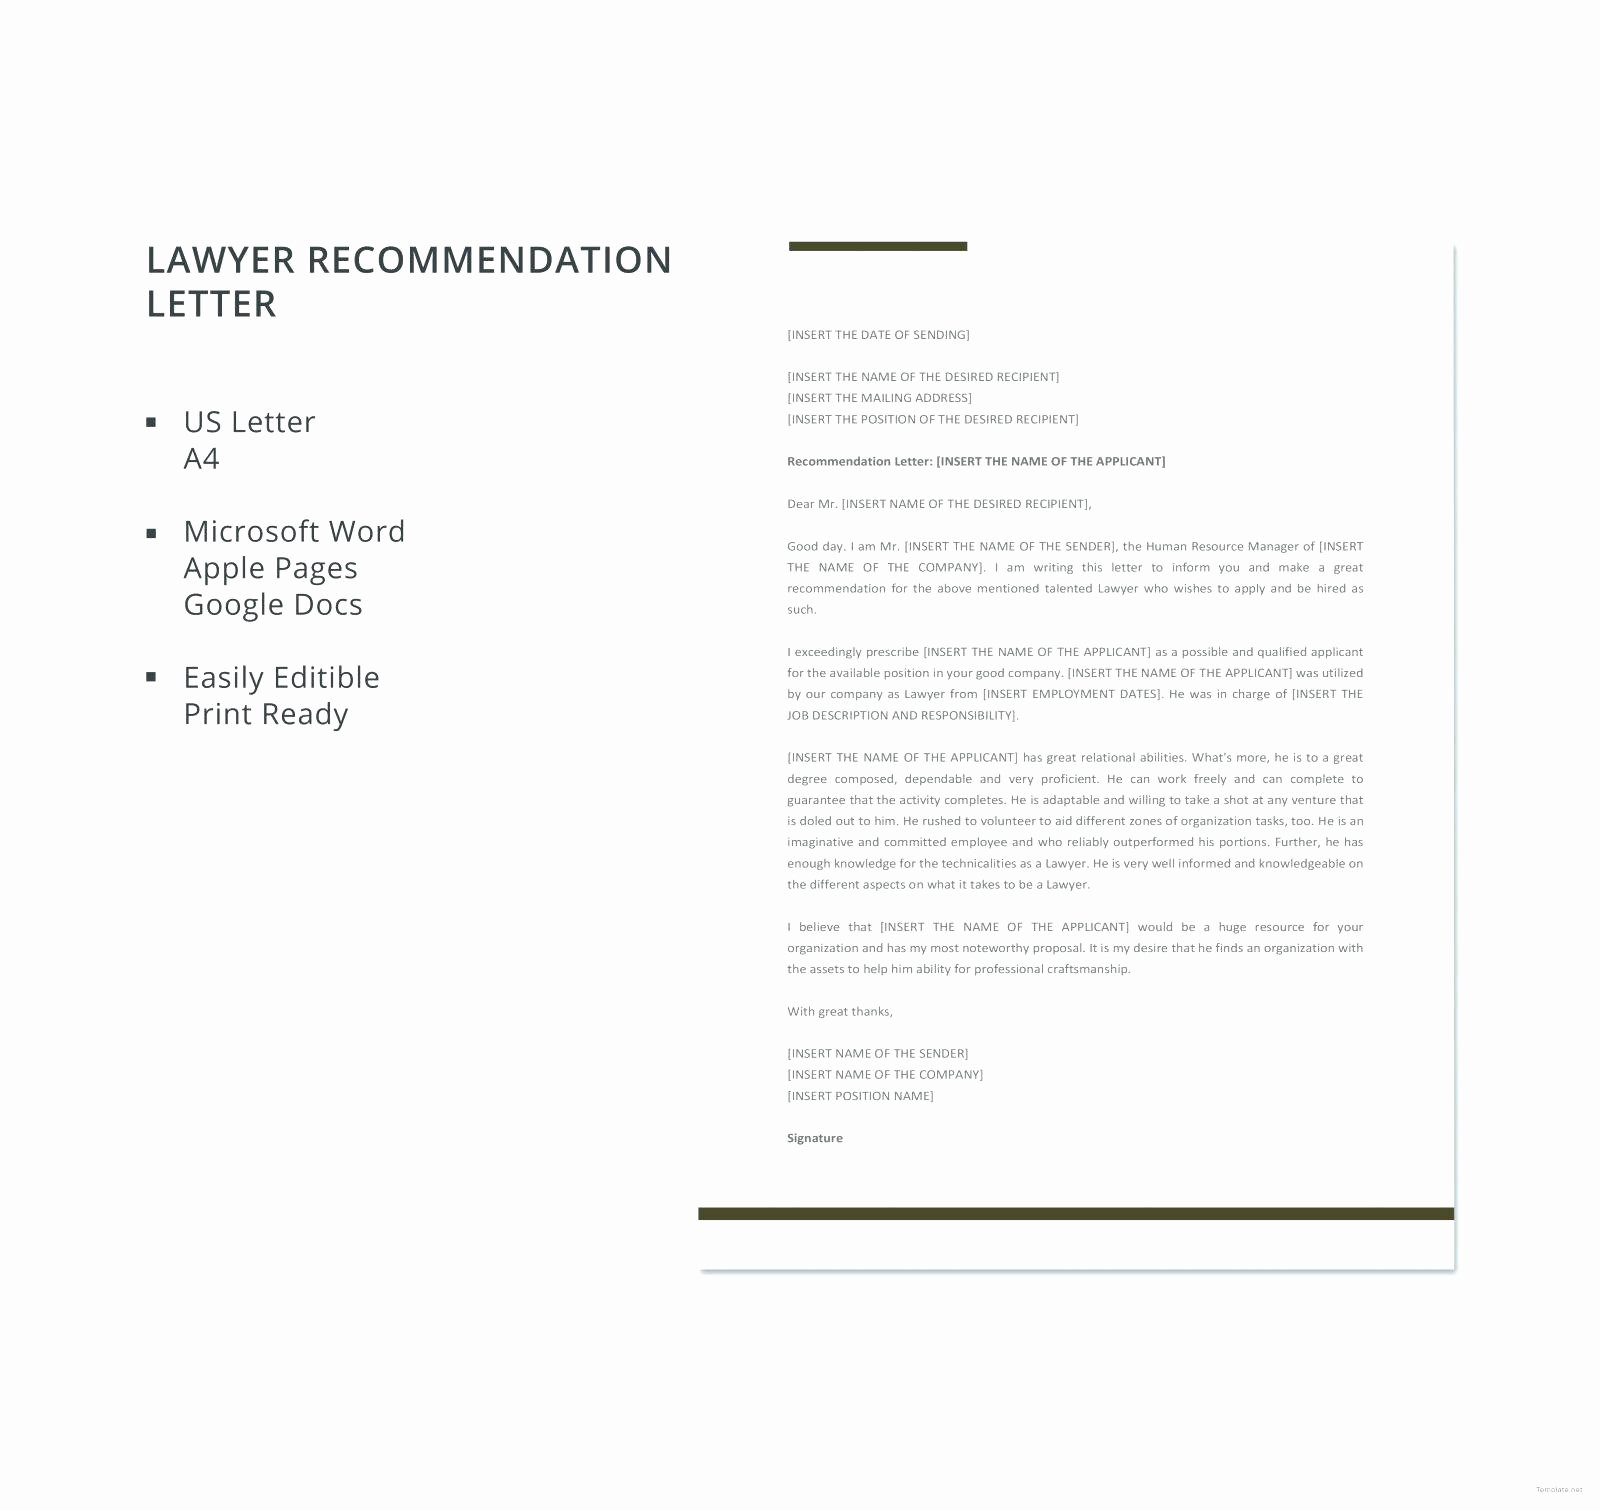 Law School Recommendation Letter Example New Law School Re Mendation Letter From Employer Samples